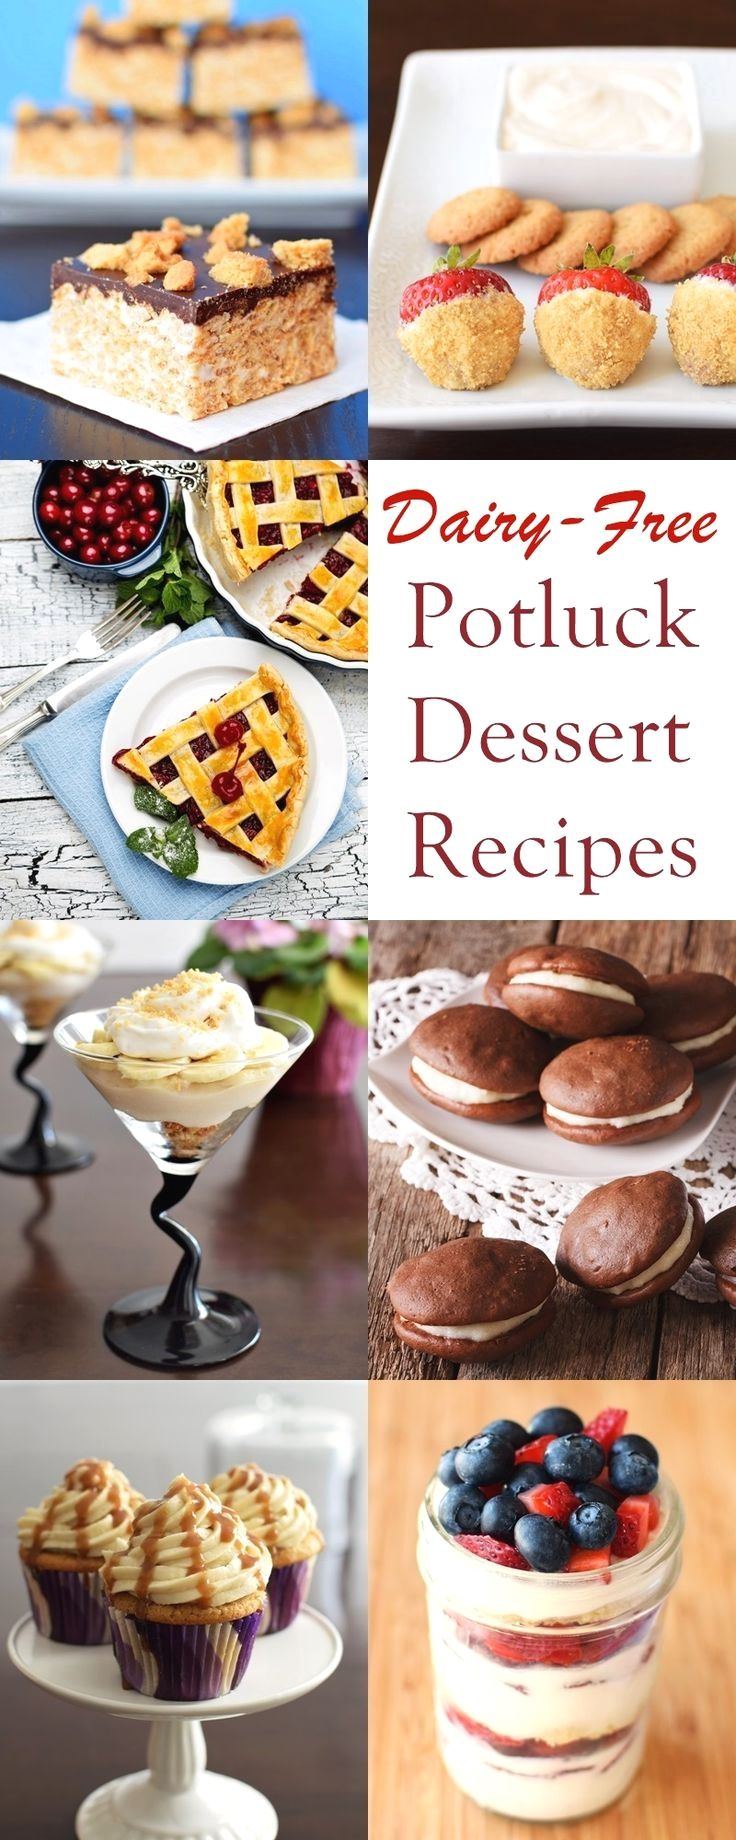 These potluck dessert recipes are delicious, easy treats for barbecues, patio pa…